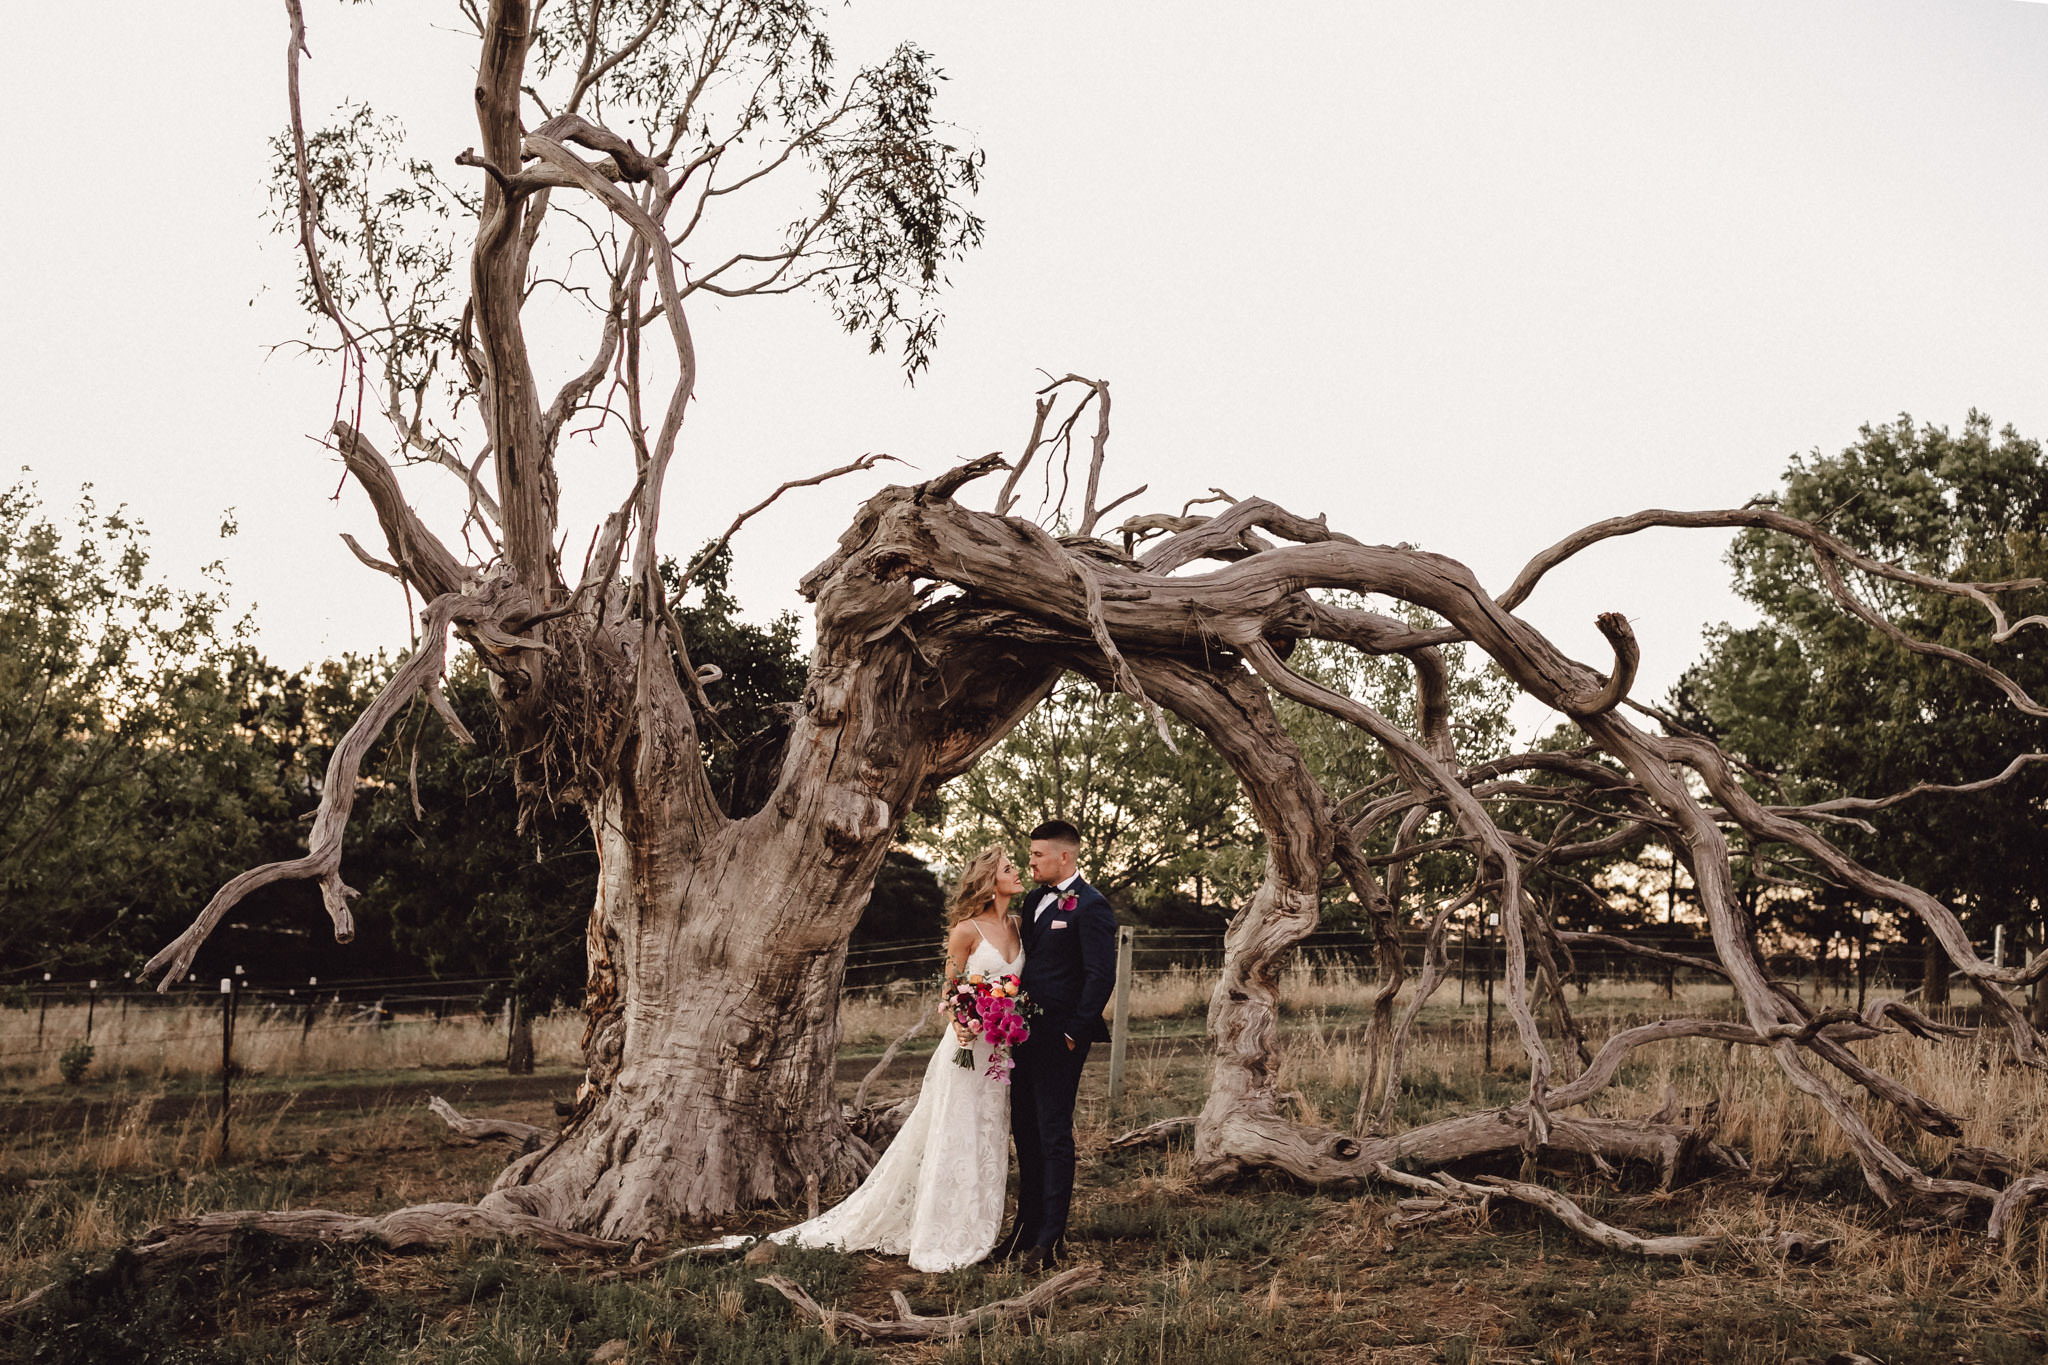 Bride, groom, old tree, backyard wedding, grace loves lace, shae estella photo, maleny, sunshinne coast